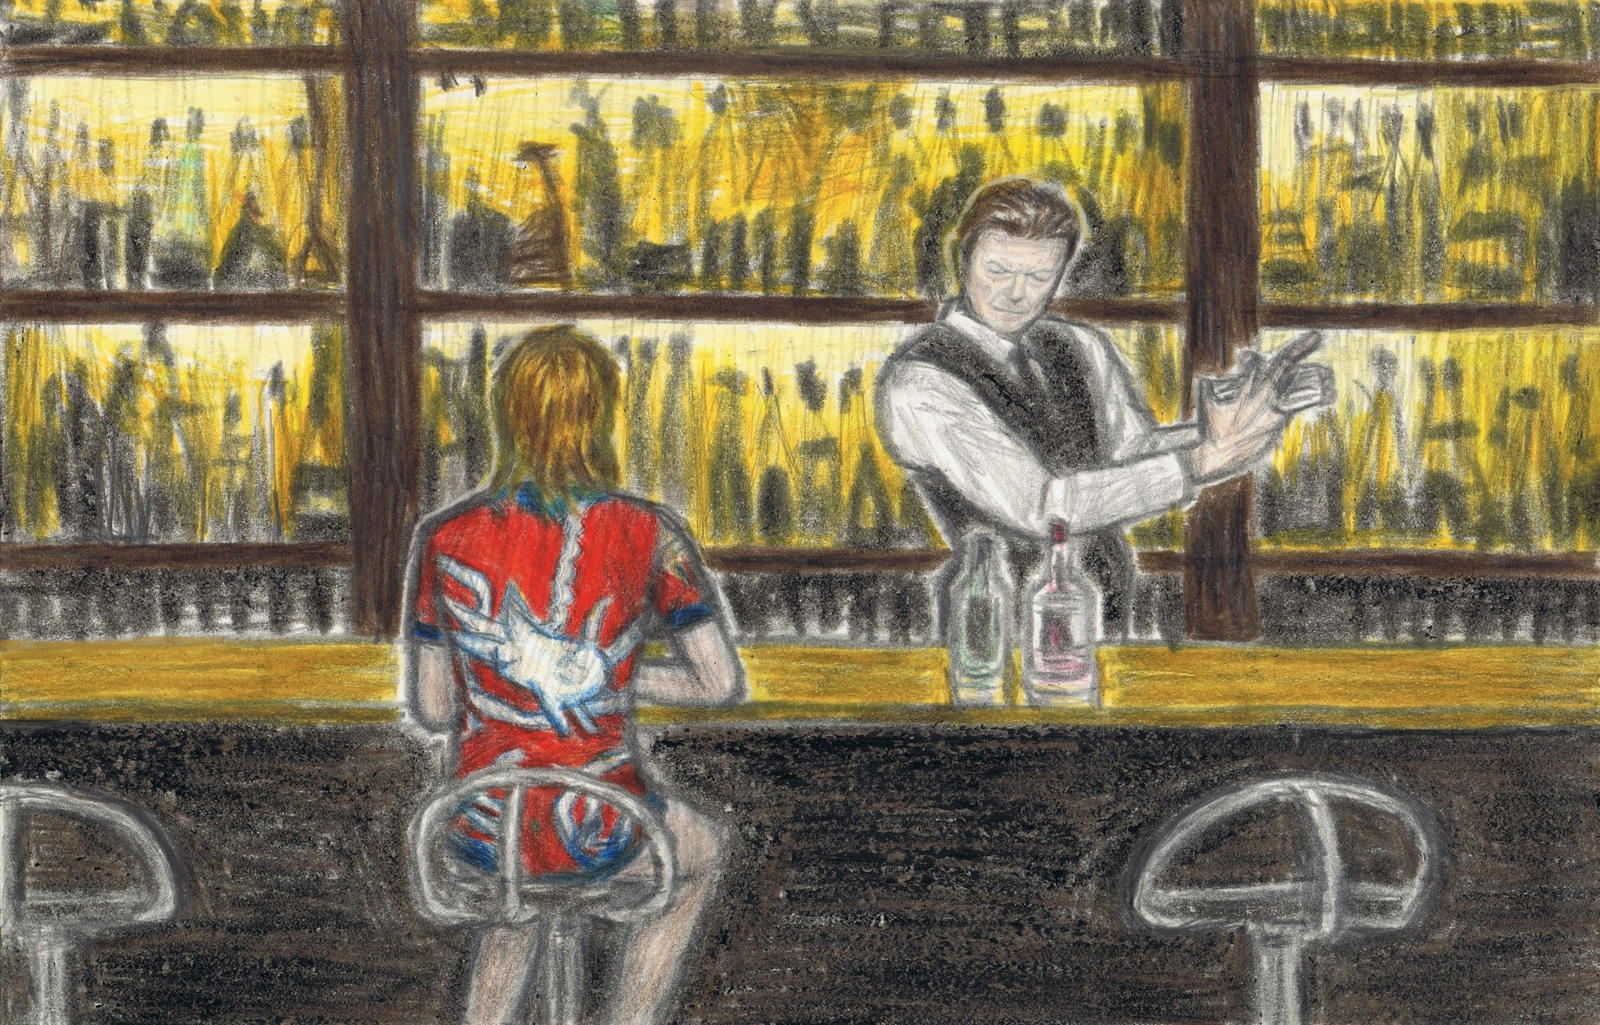 David Bowie as a bartender 2 by gagambo